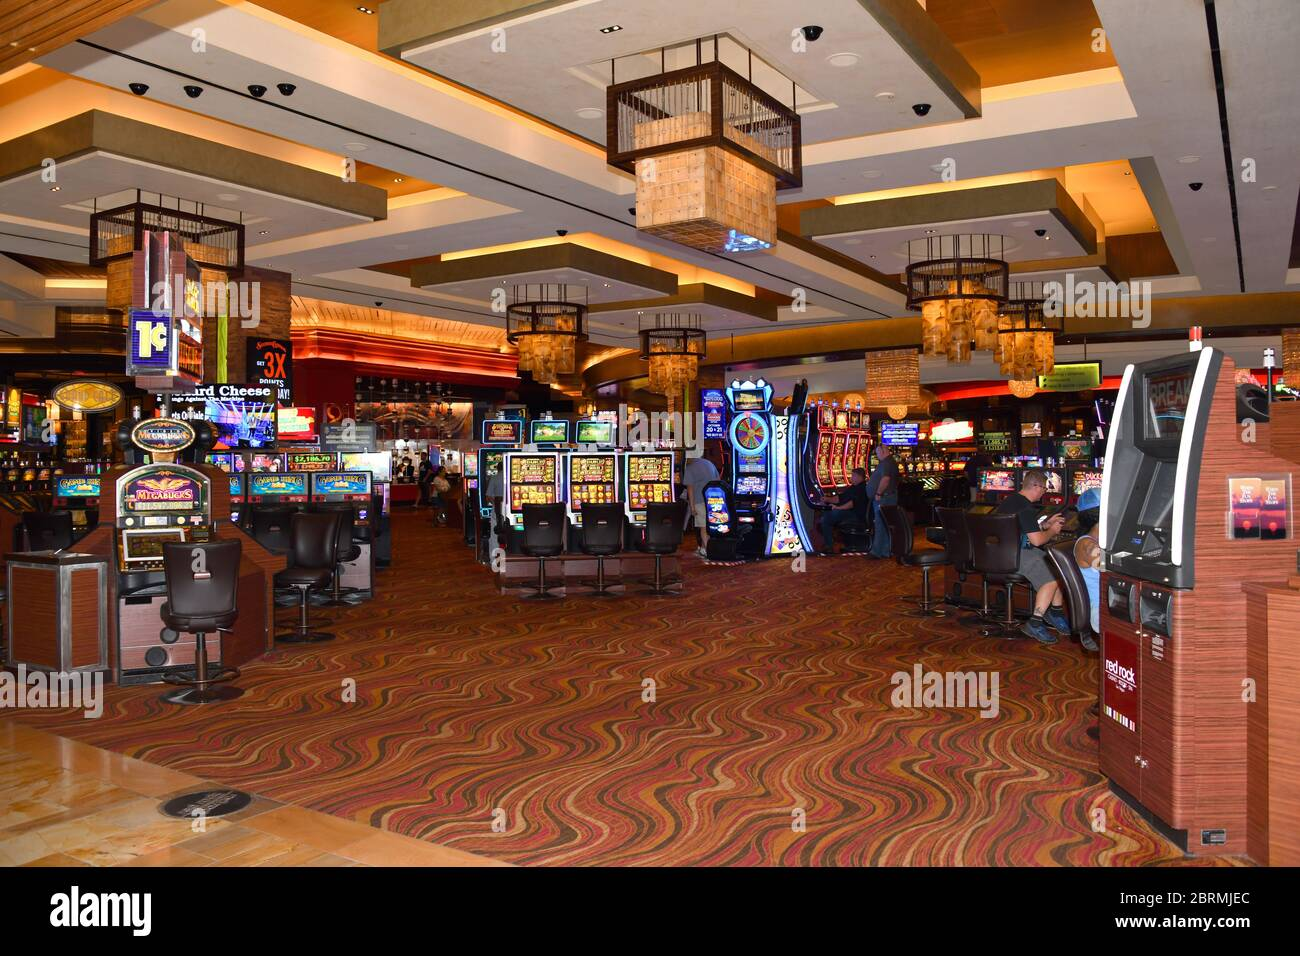 Red Rock Casino High Resolution Stock Photography And Images Alamy